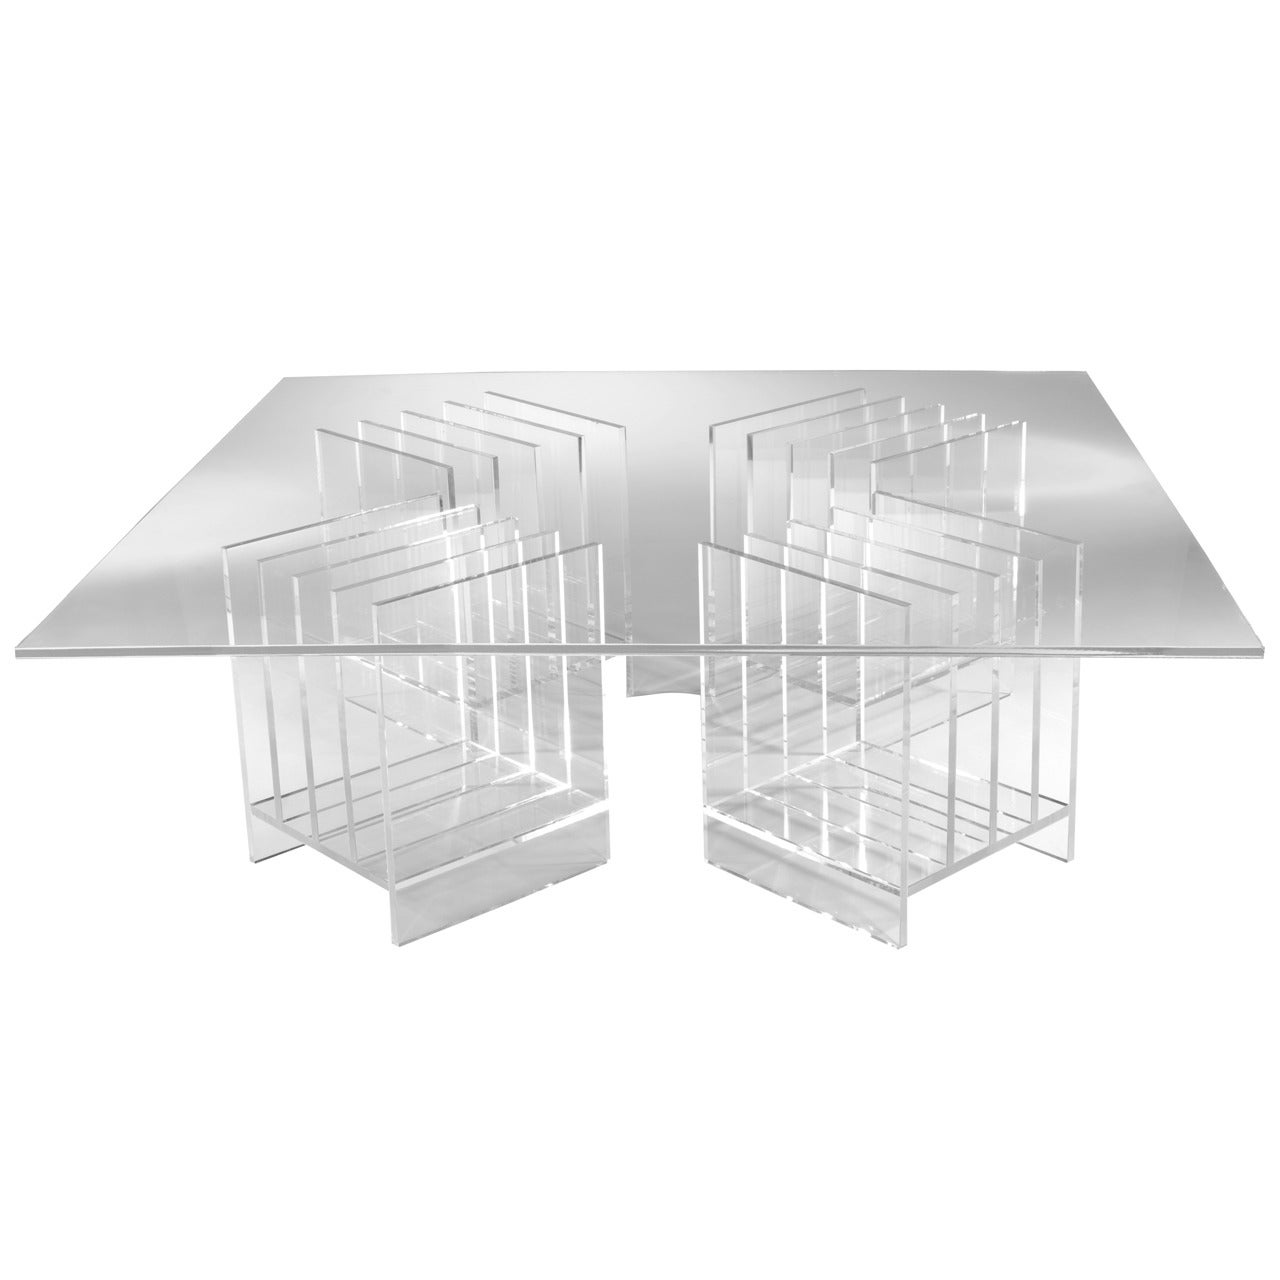 Sheer Coffee Table, Designed by Laurie Beckerman in 2011